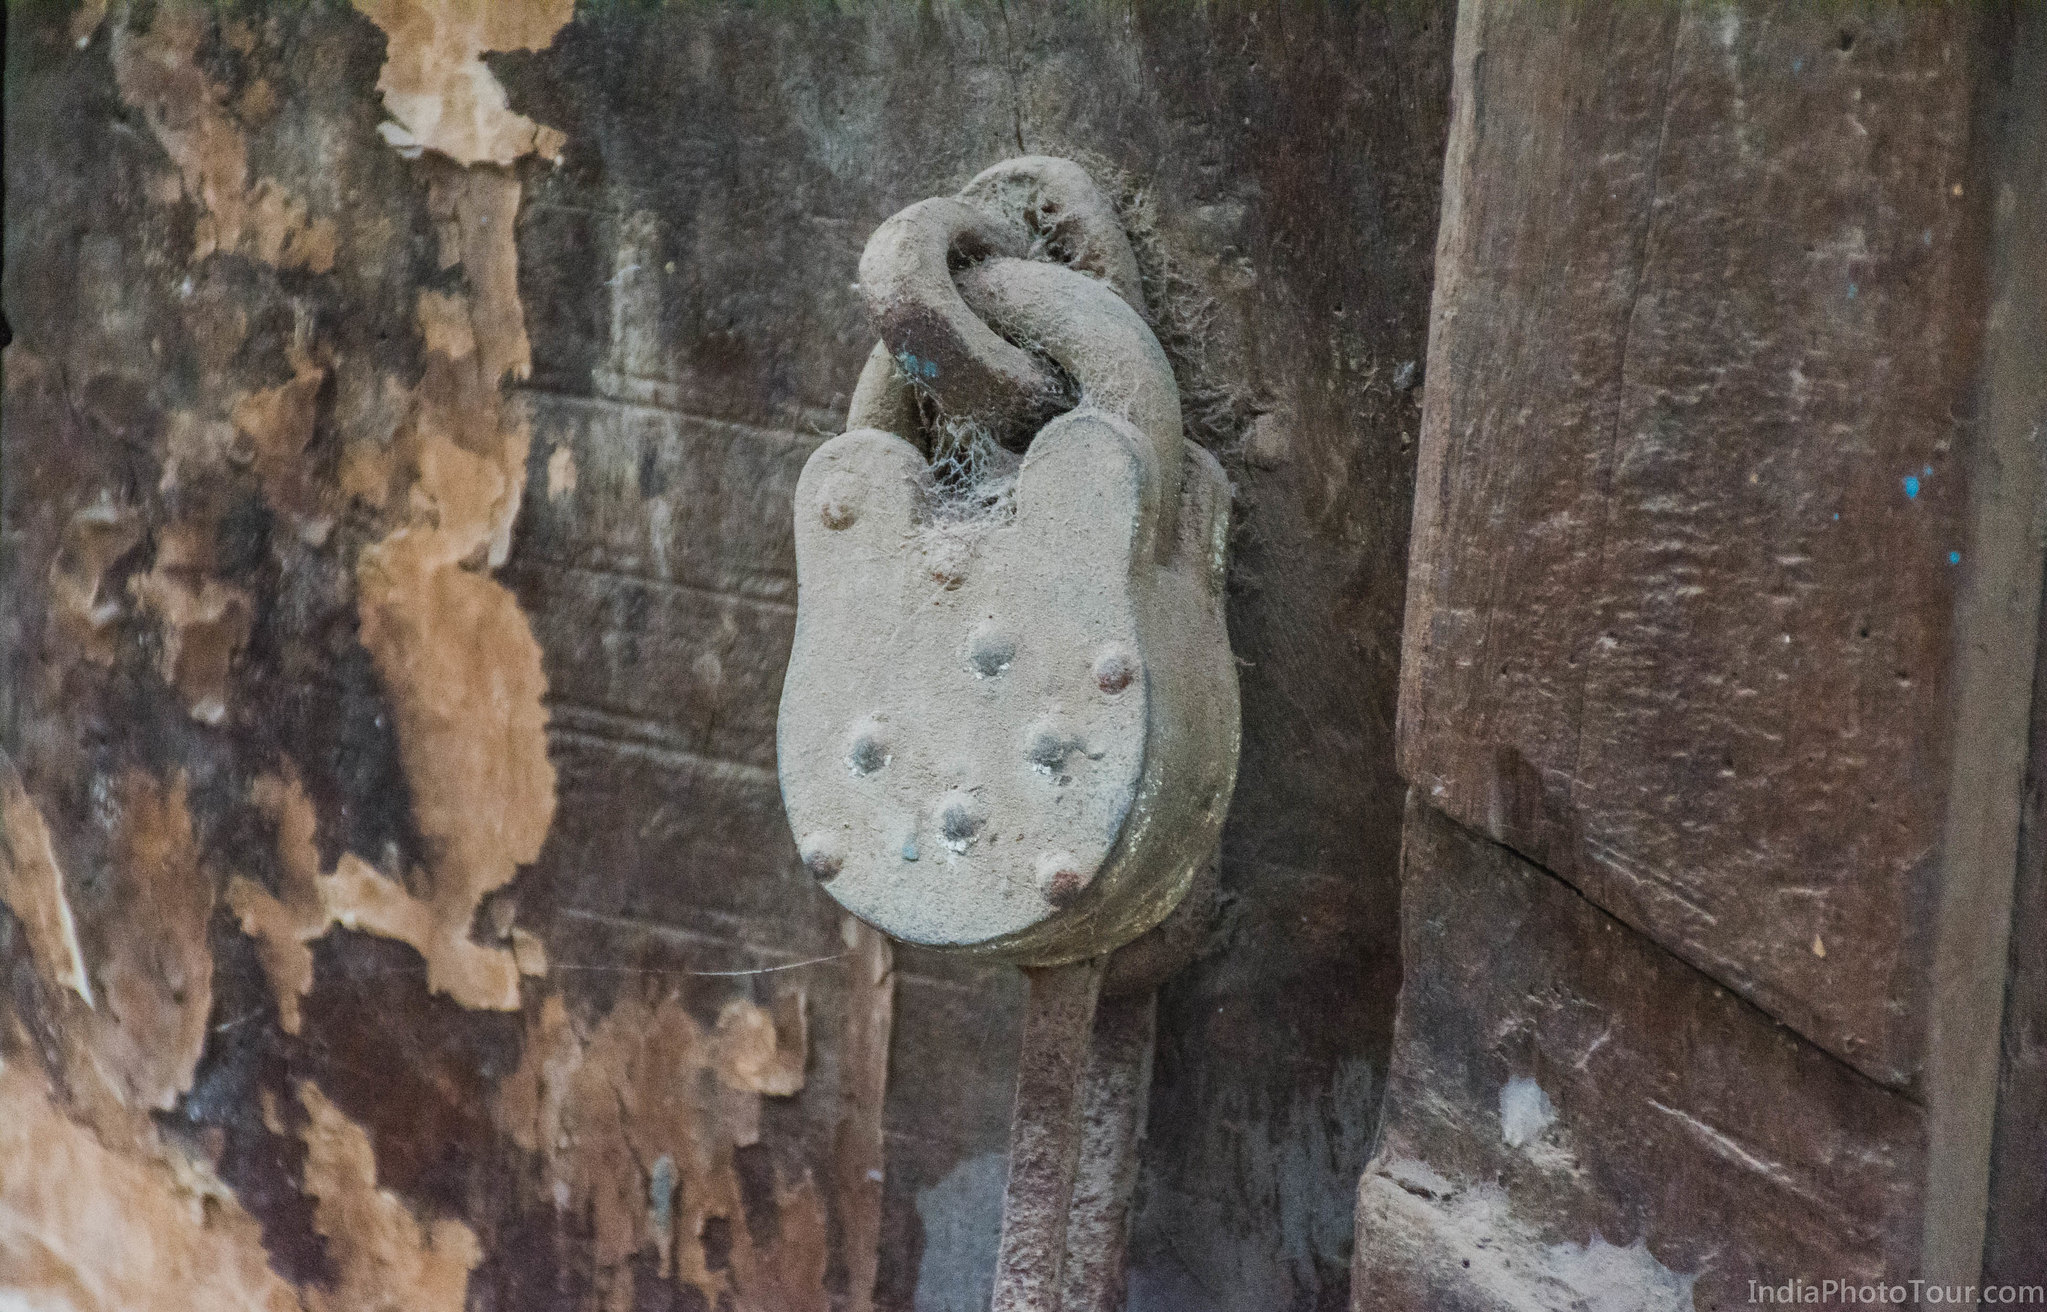 This lock on a old door has not been touched in years